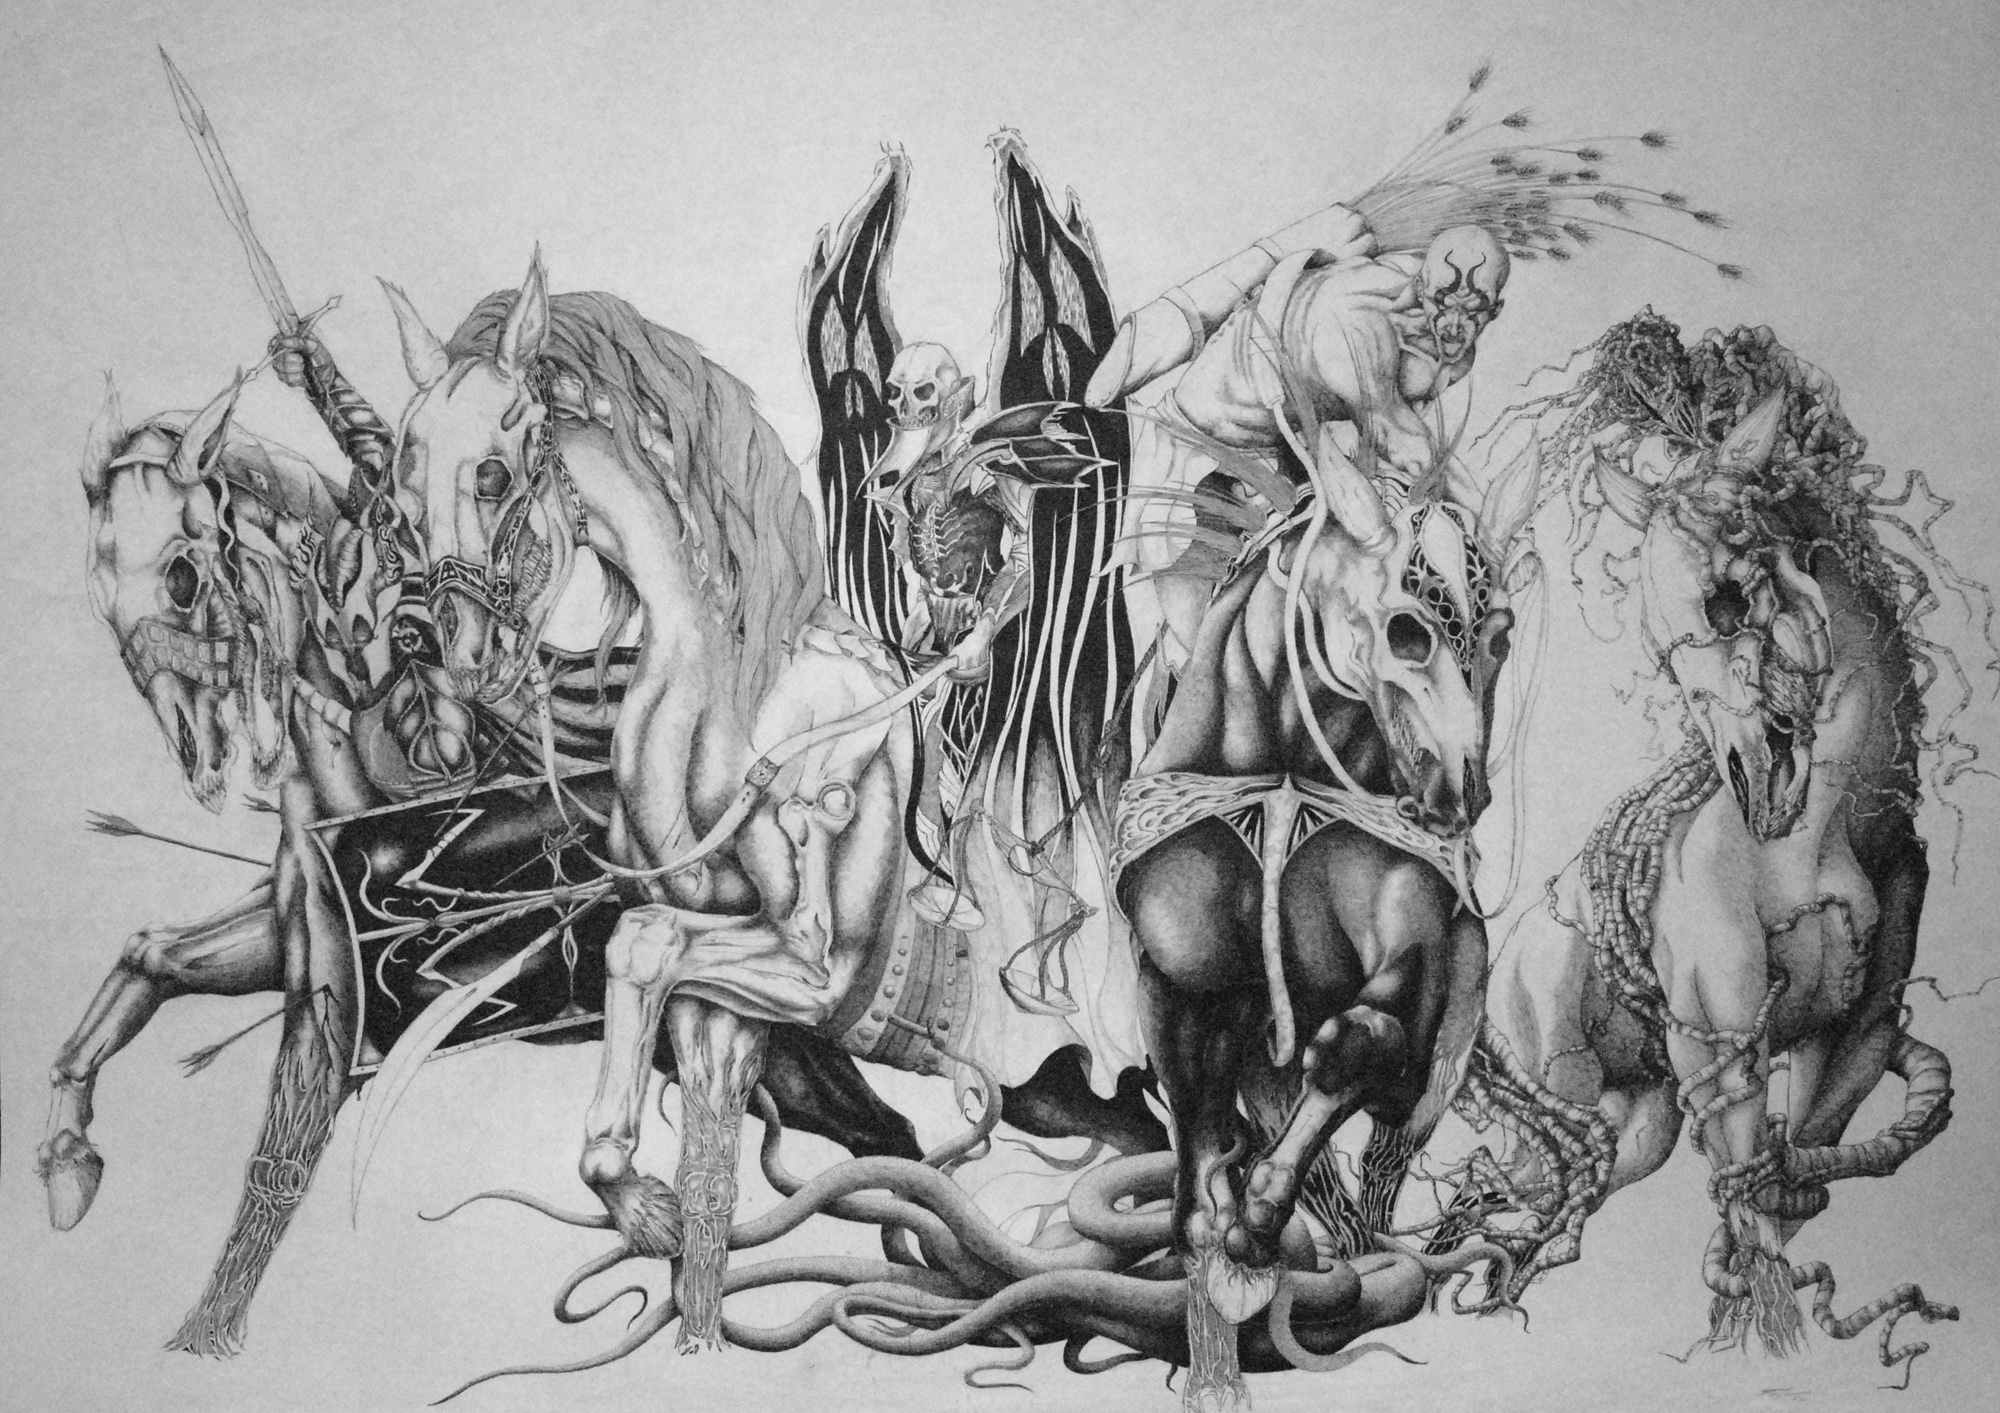 Horsemen of the Apocalypse religion revelations dark horror weapons 2000x1413